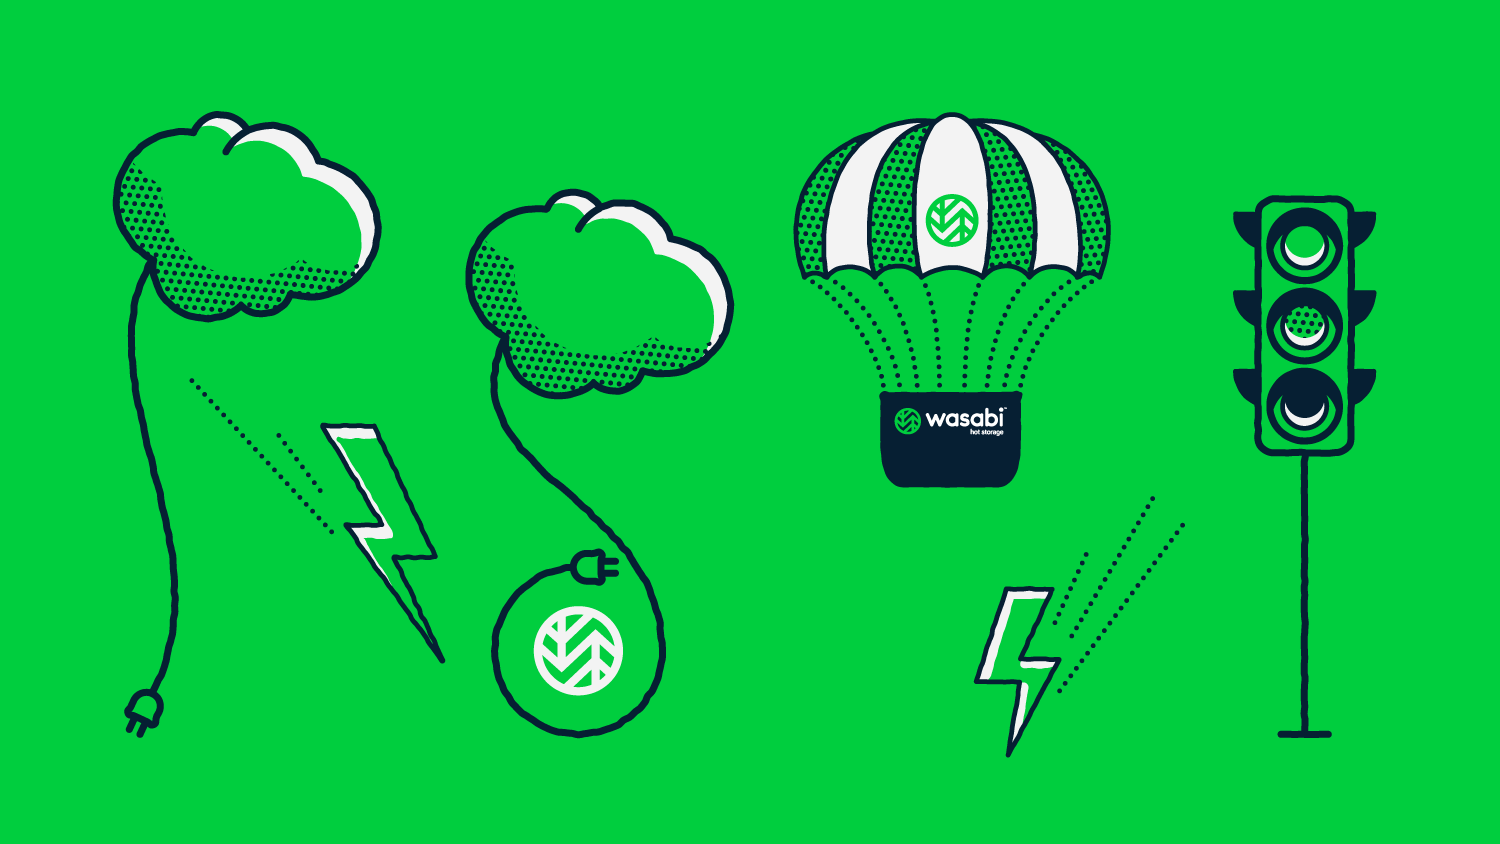 Wasabi Animation Illustrations | Wasabi, Spiceworks | Makemark